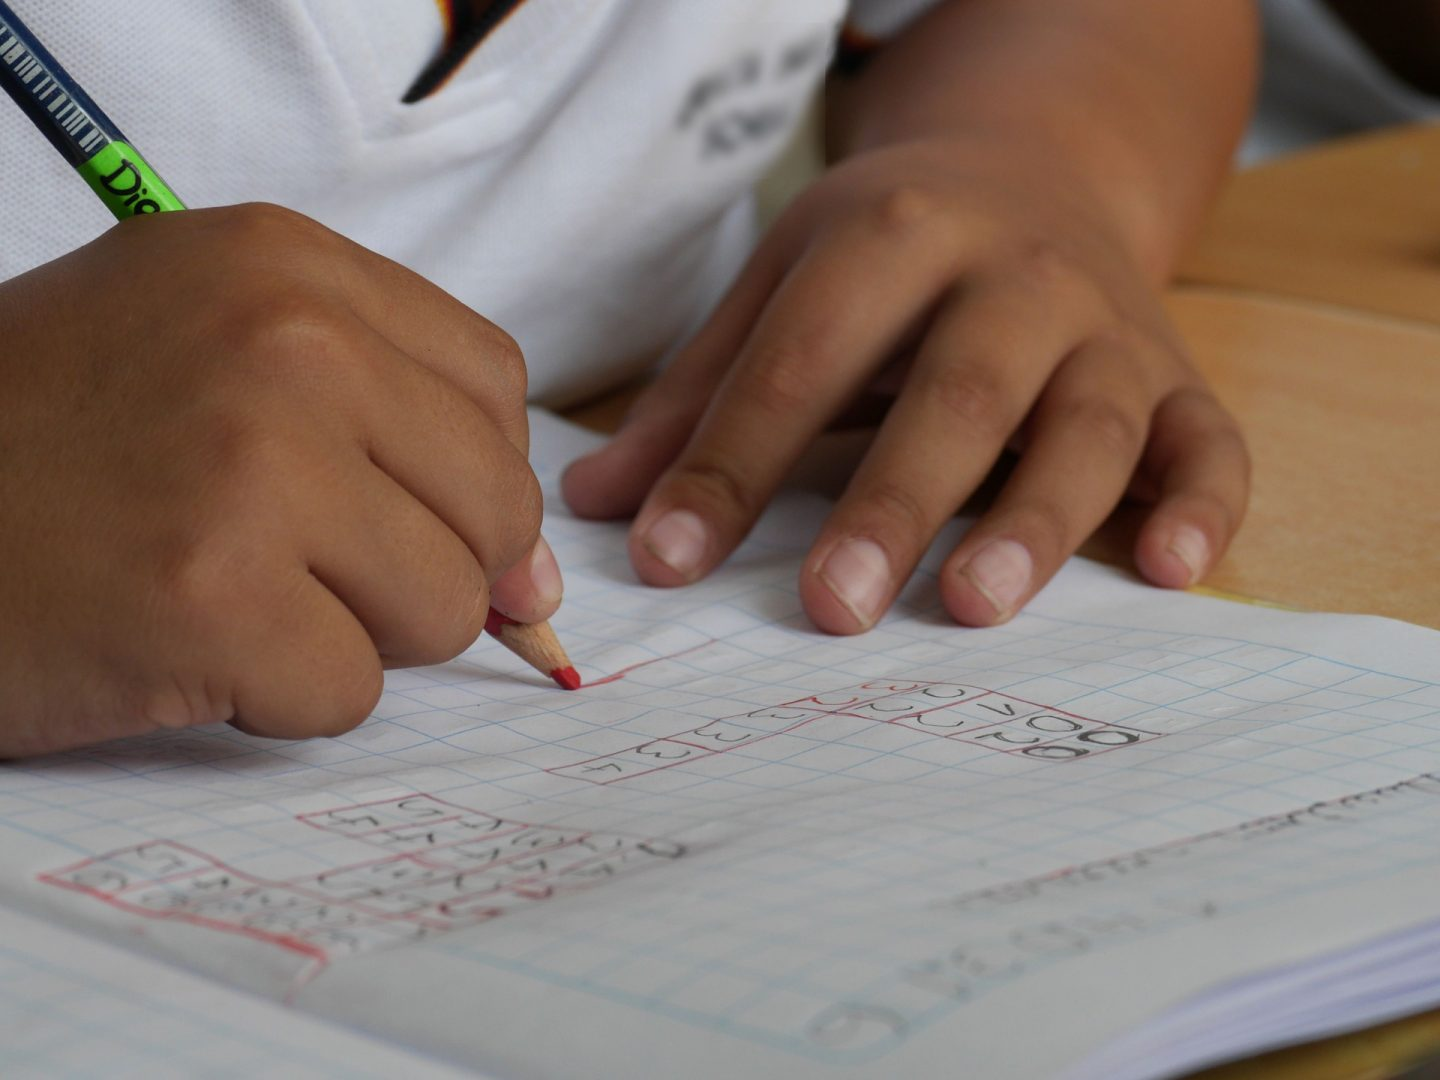 Child writing on a worksheet at school